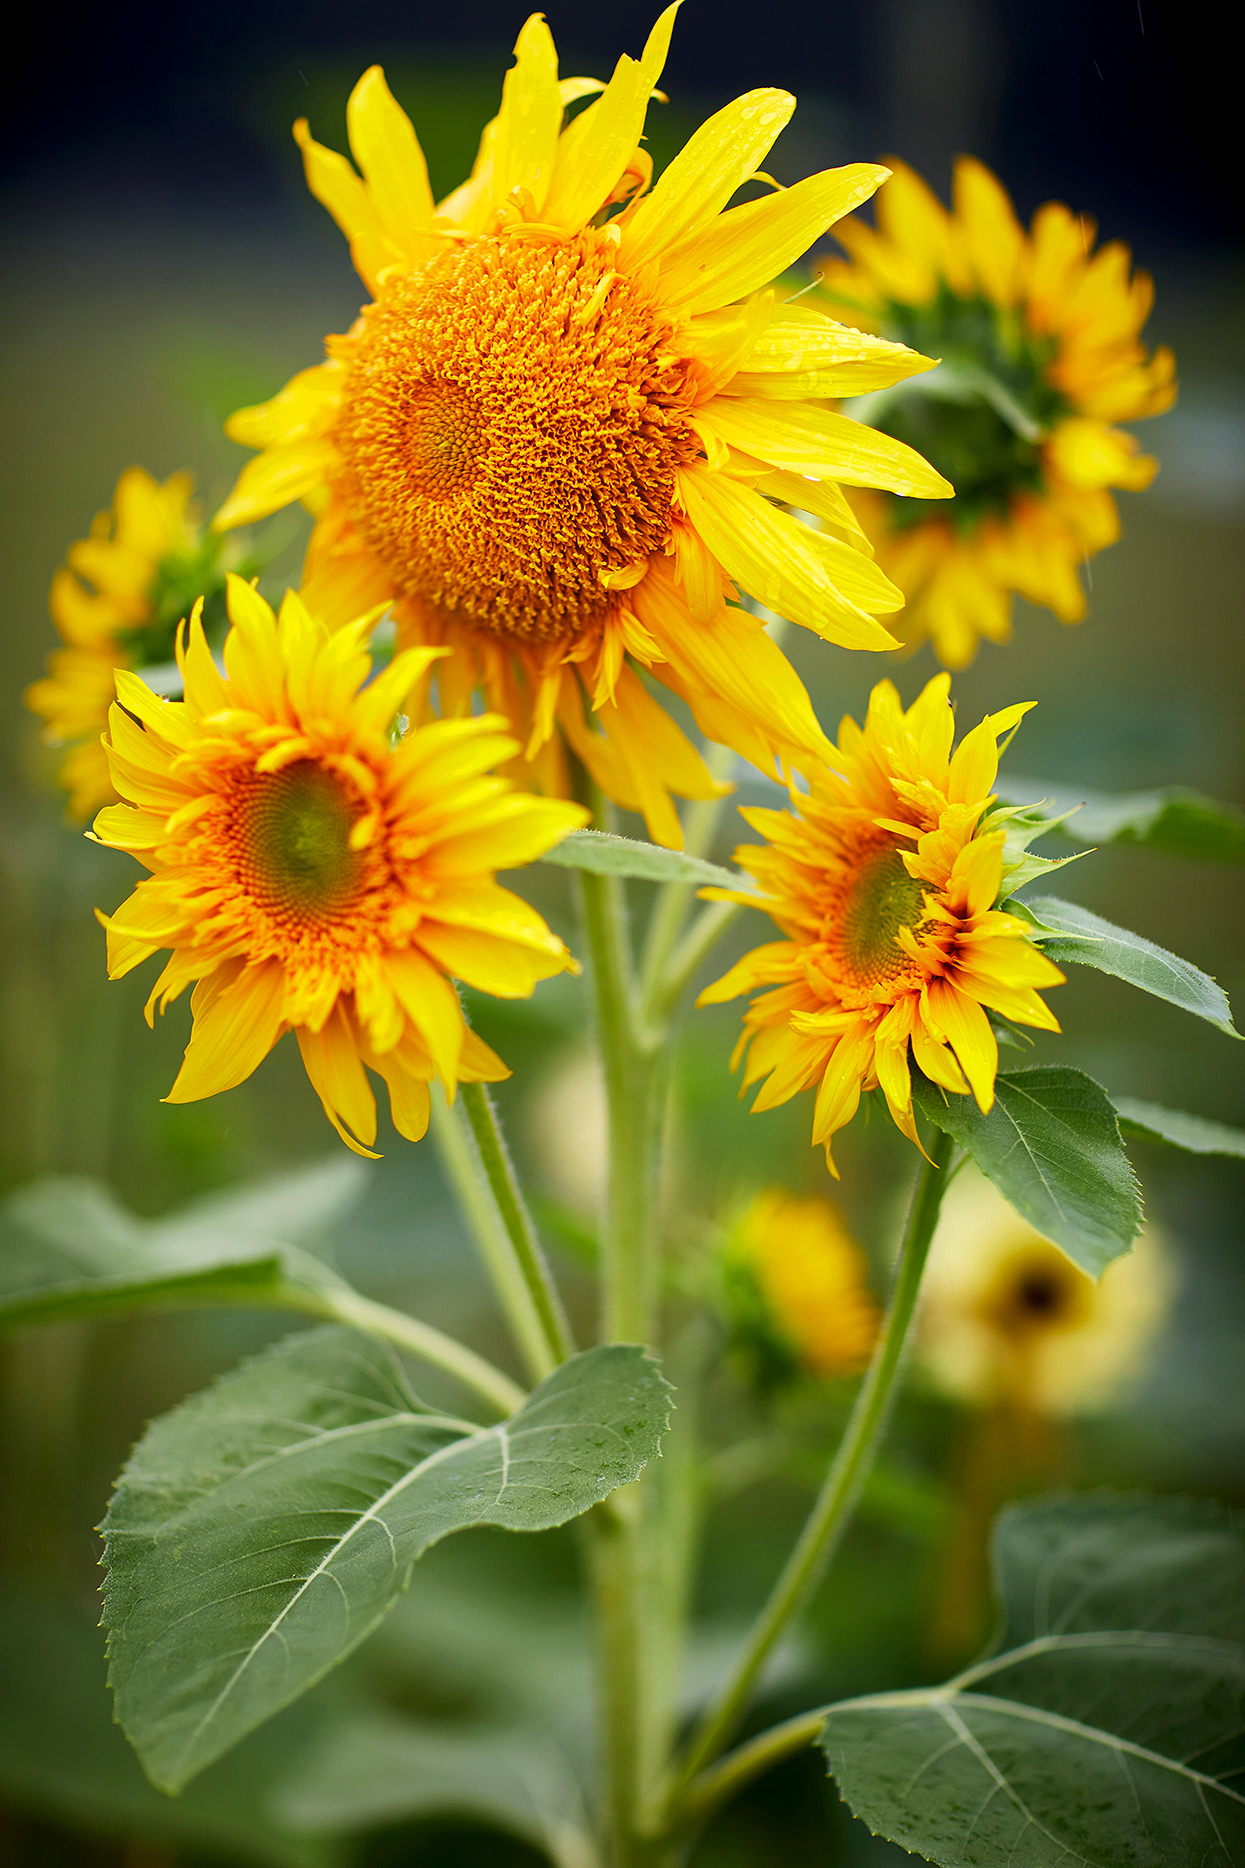 dynamic shot of sunflower blooms and foliage